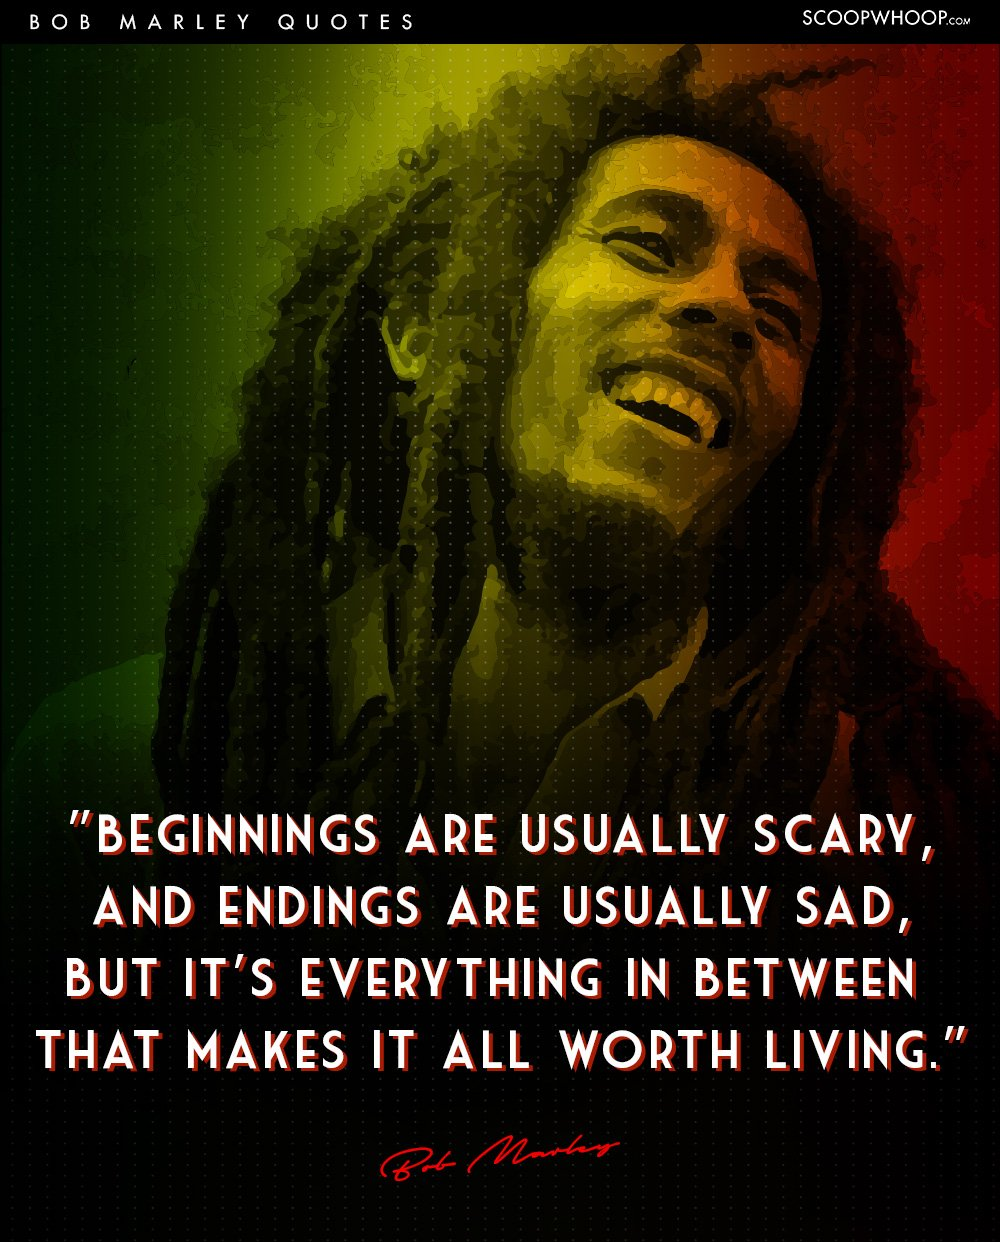 Quotes of bob marley about life